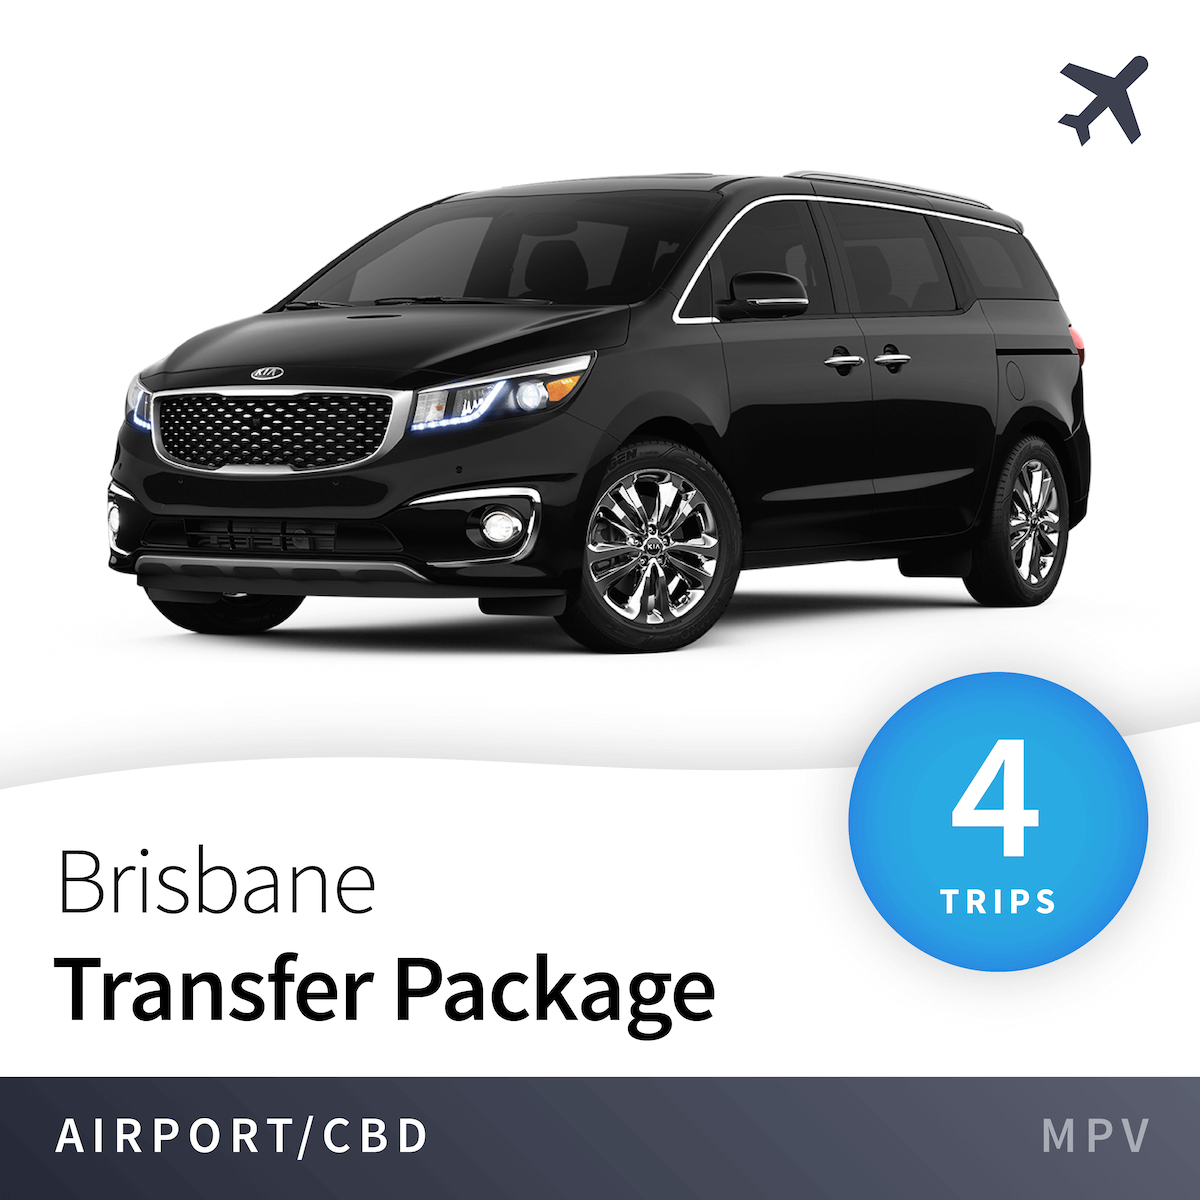 Brisbane Airport Transfer Package - MPV (4 Trips) 11